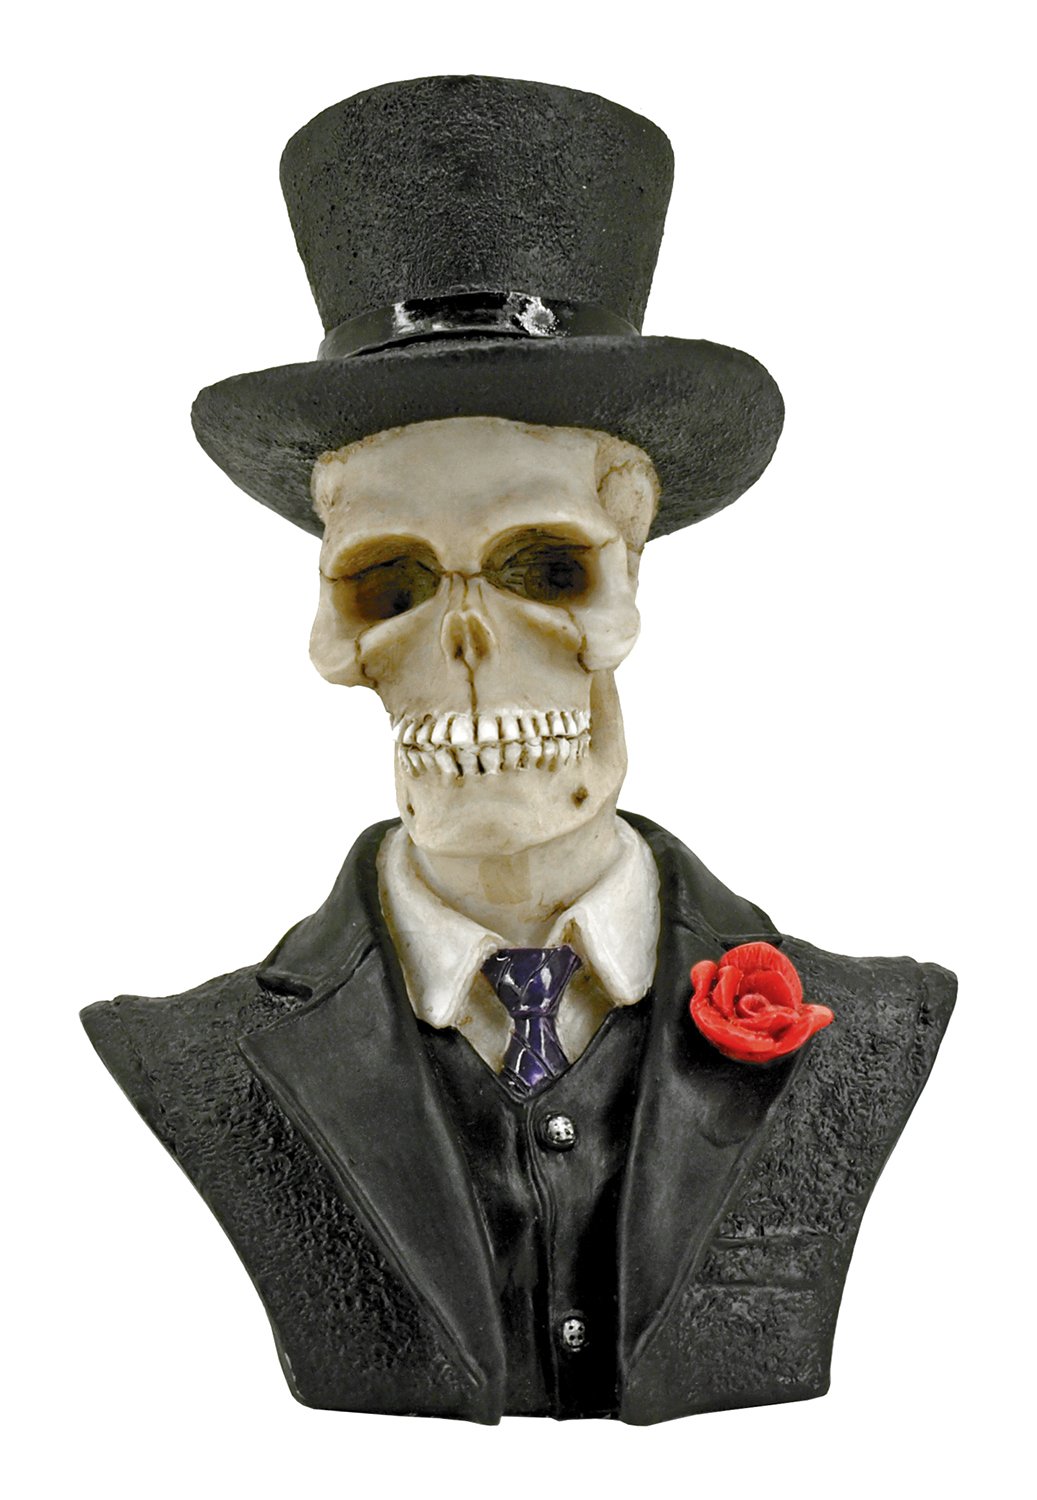 Skeleton Groom of Death Cake Topper Figurine